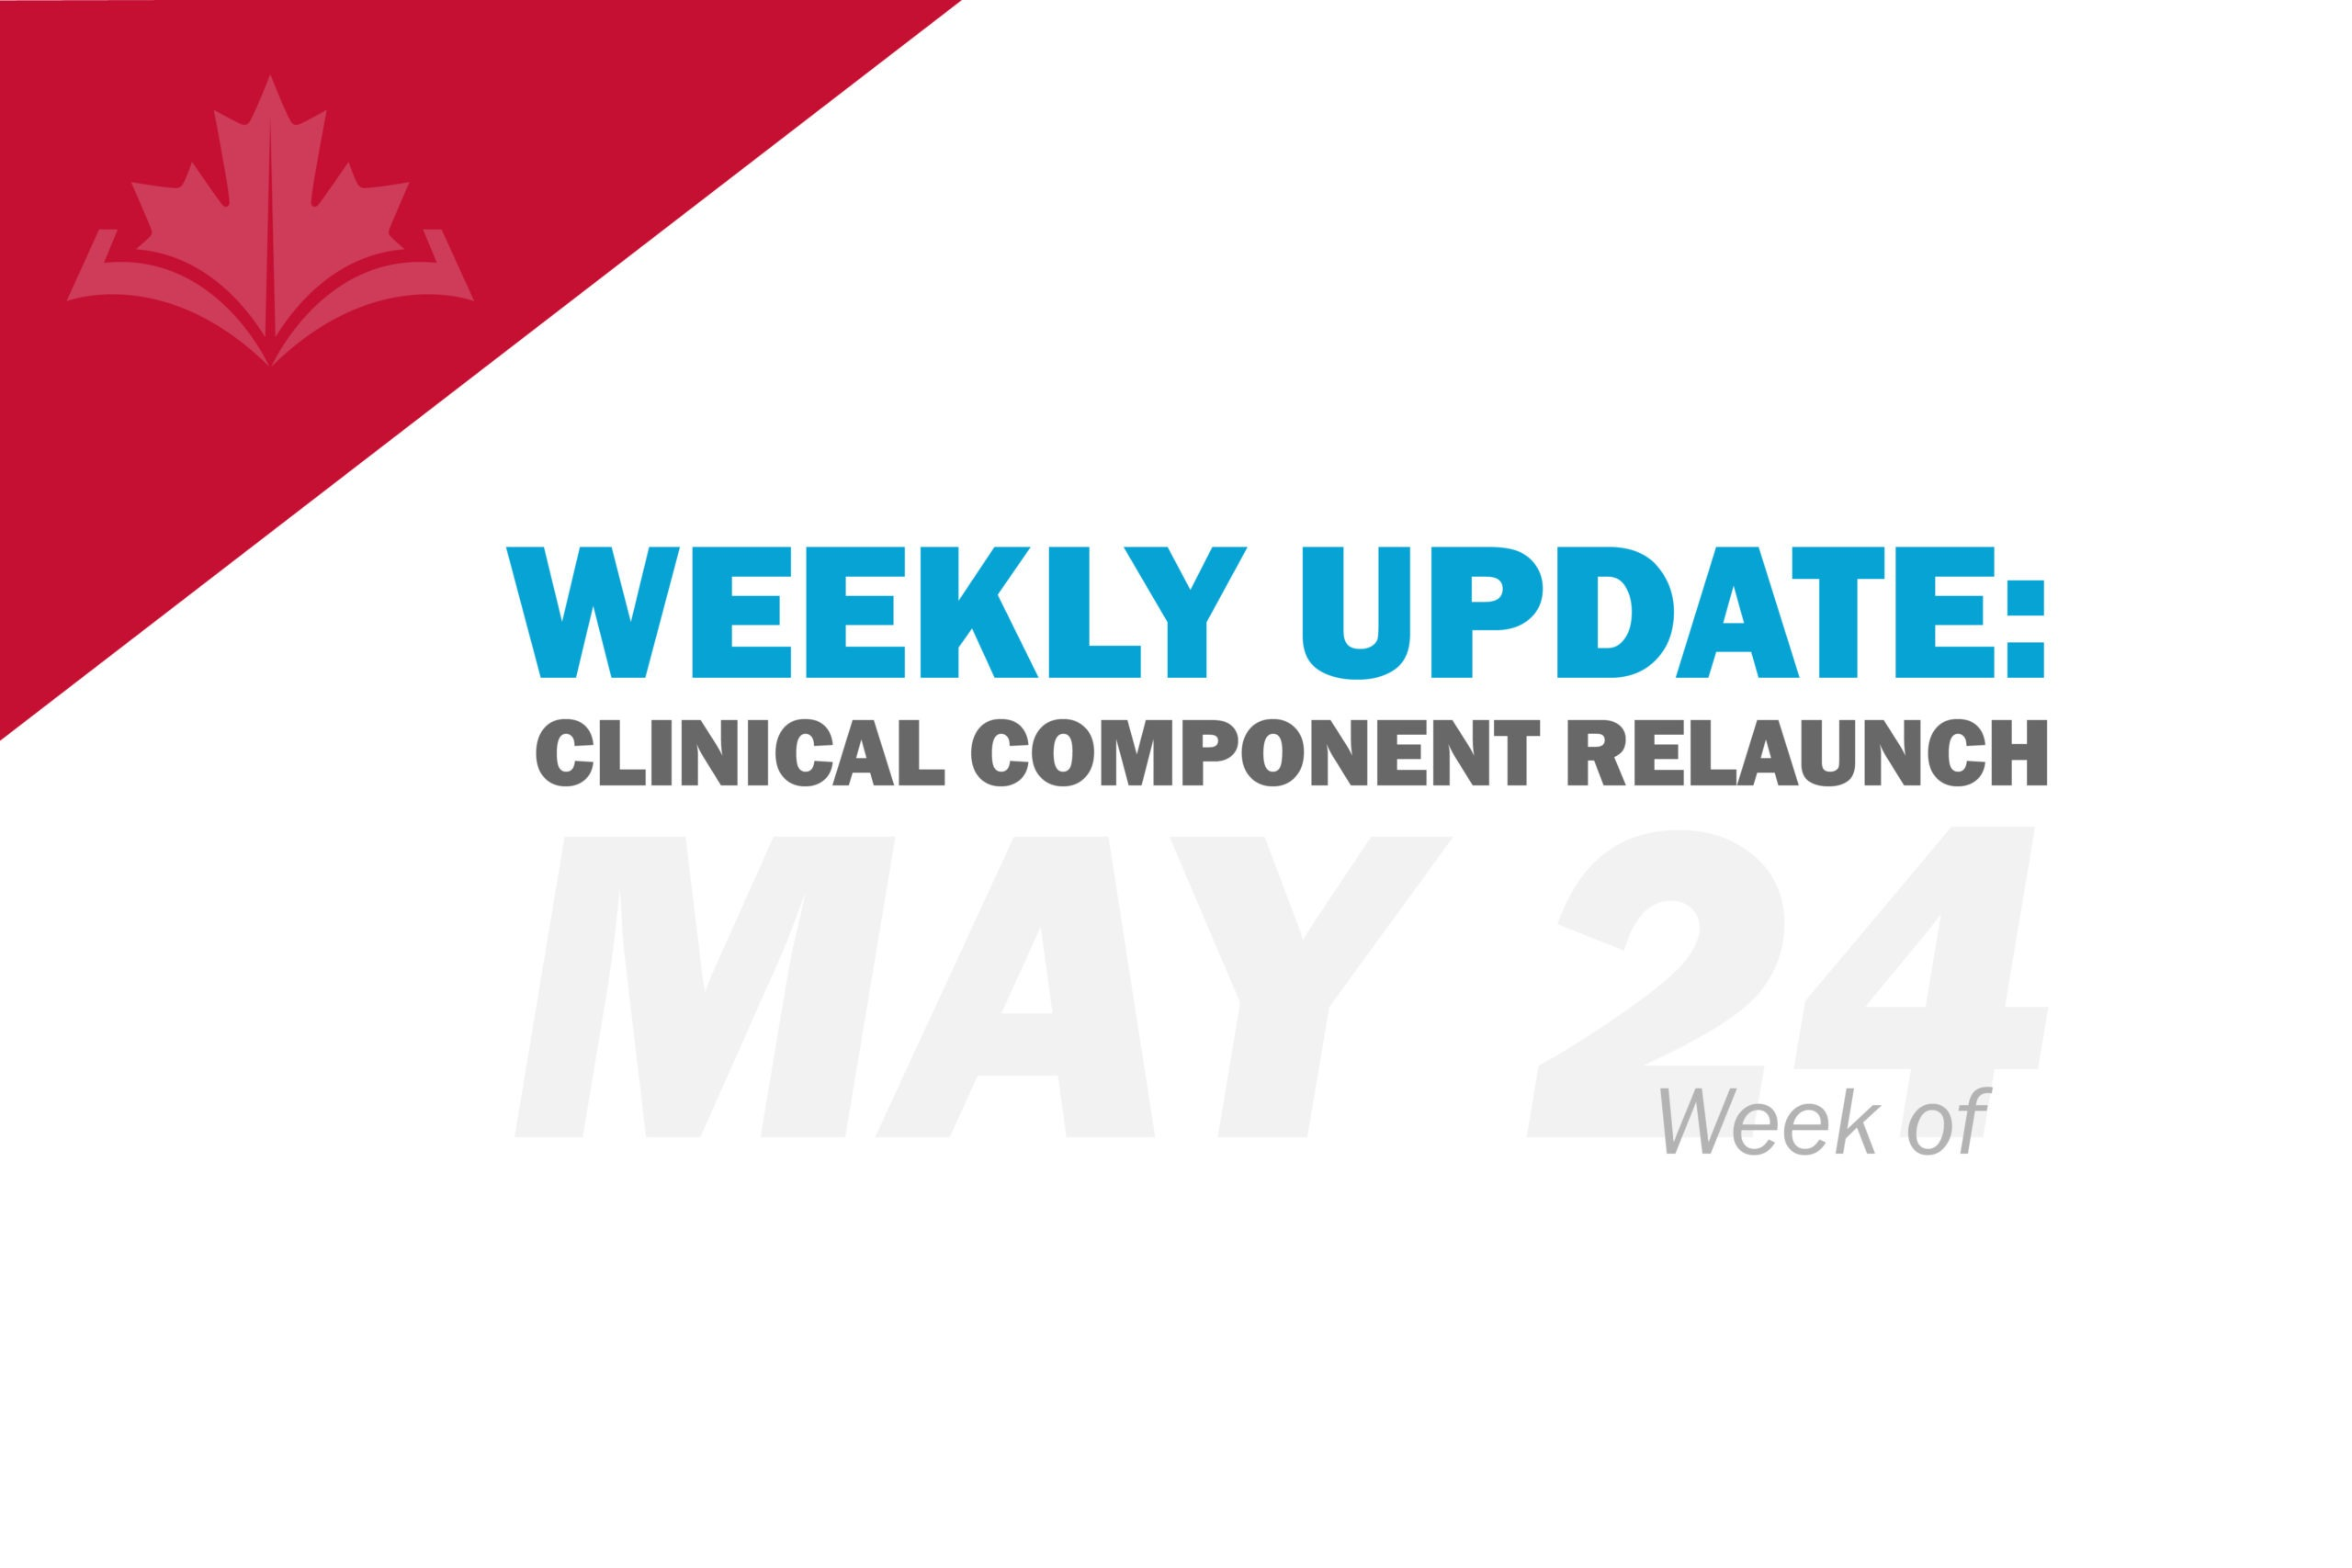 Weekly Clinical Component Update: Week of May 24